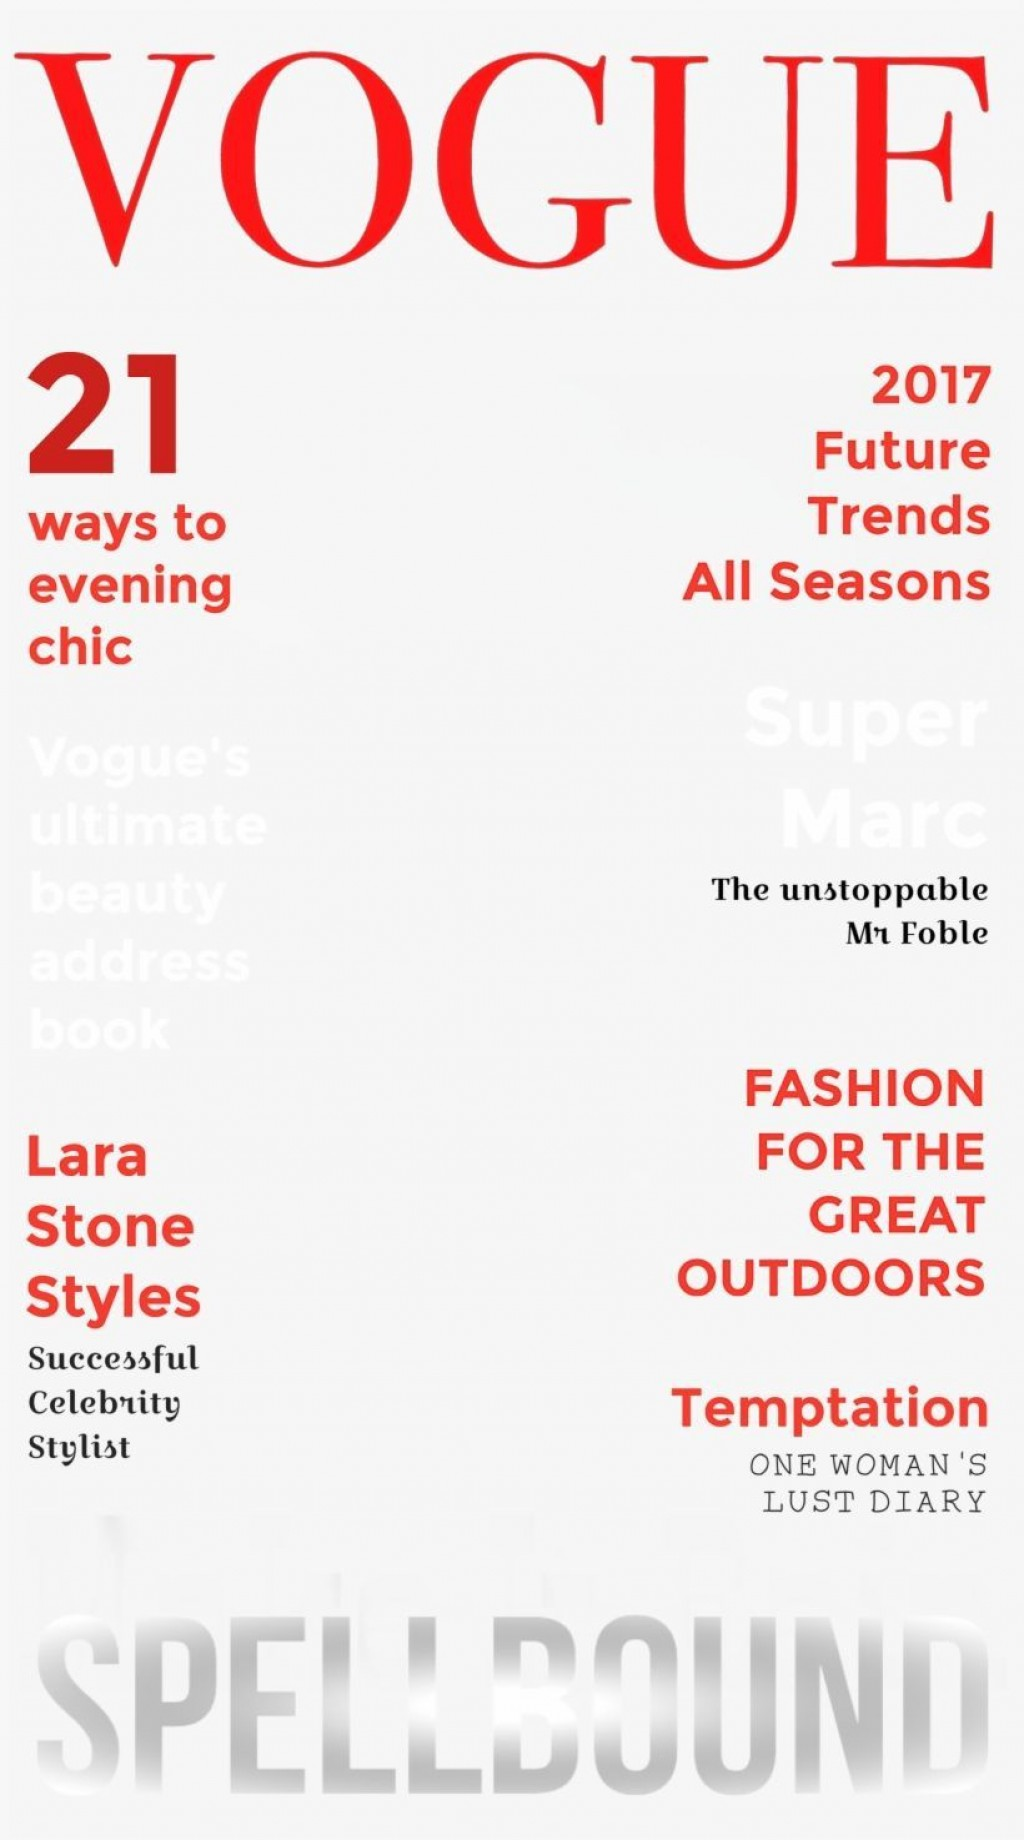 000 Archaicawful Photoshop Fashion Magazine Cover Template Free Sample Large